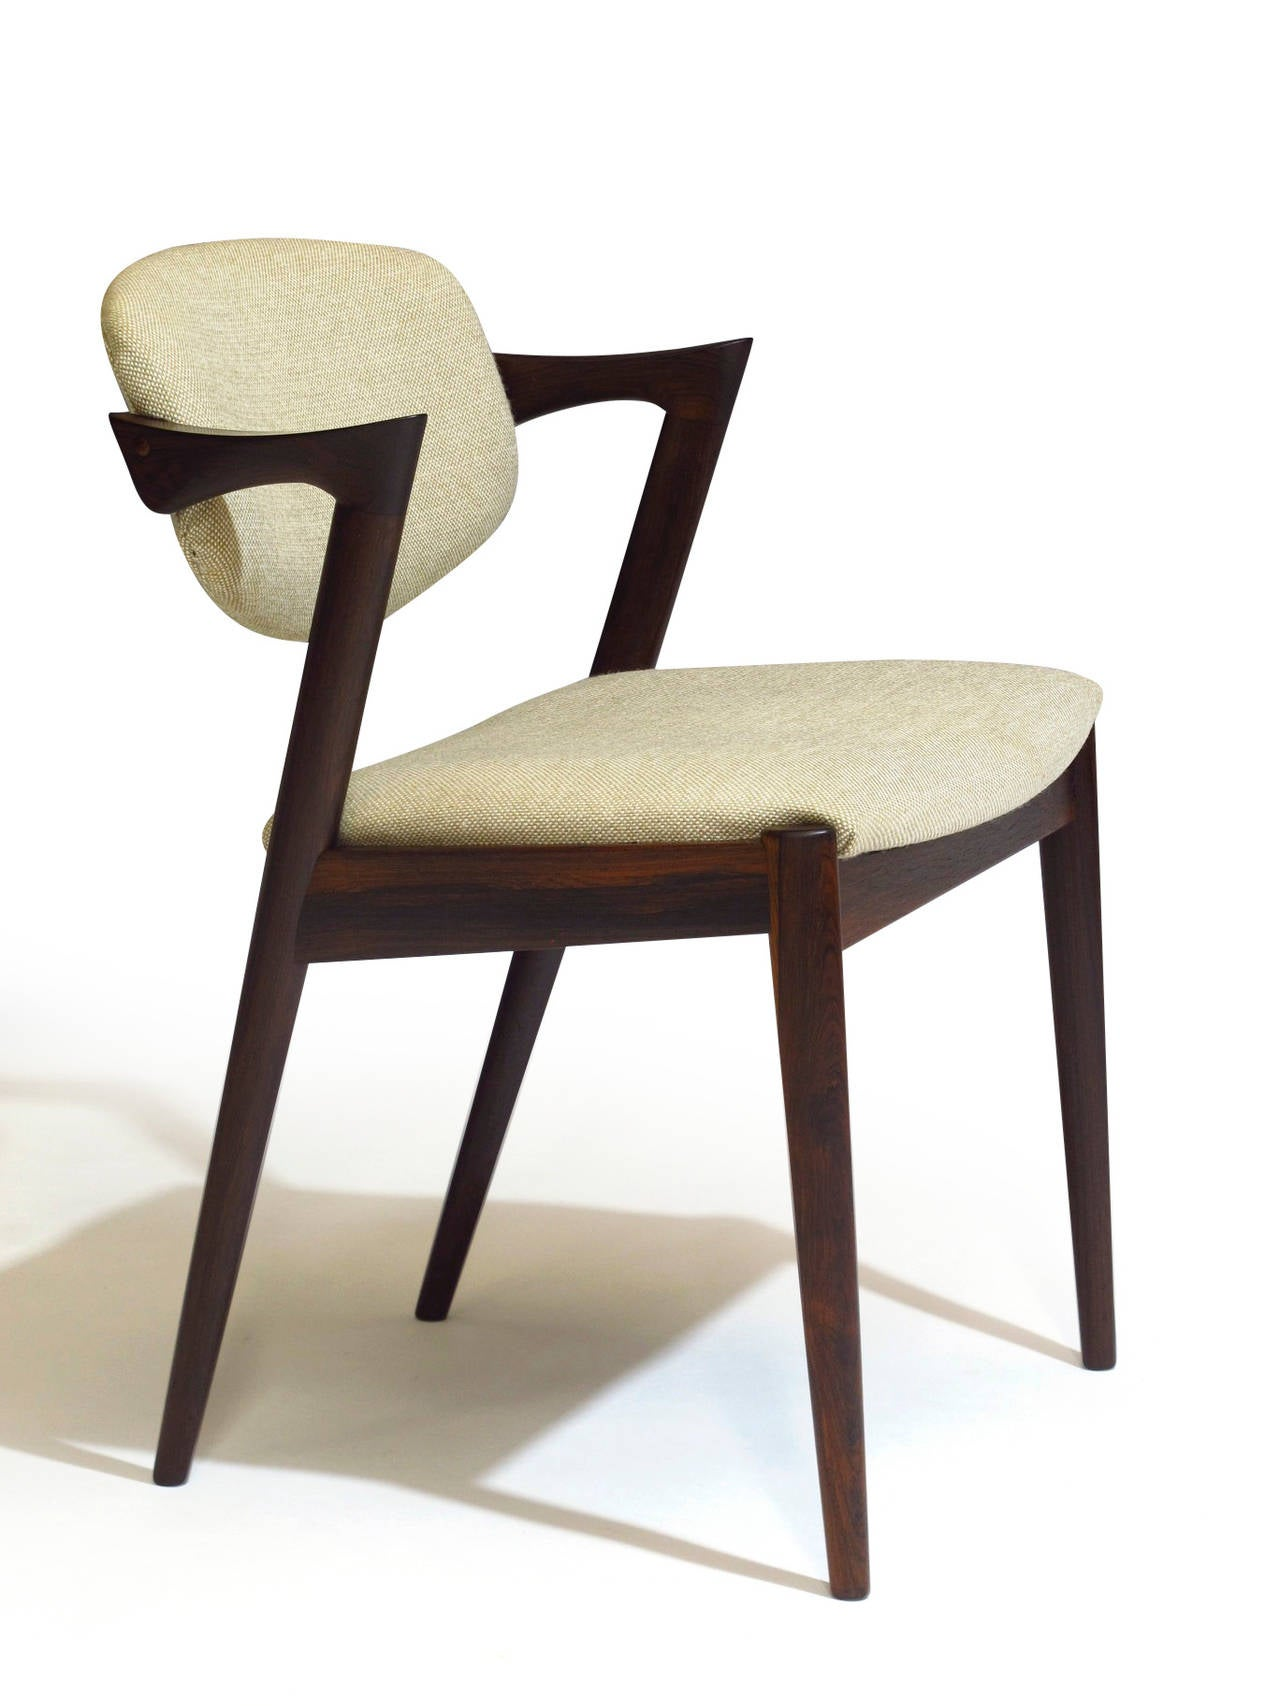 Six Rosewood Kai Kristiansen Danish Dining Chairs 14 Available At 1stdibs